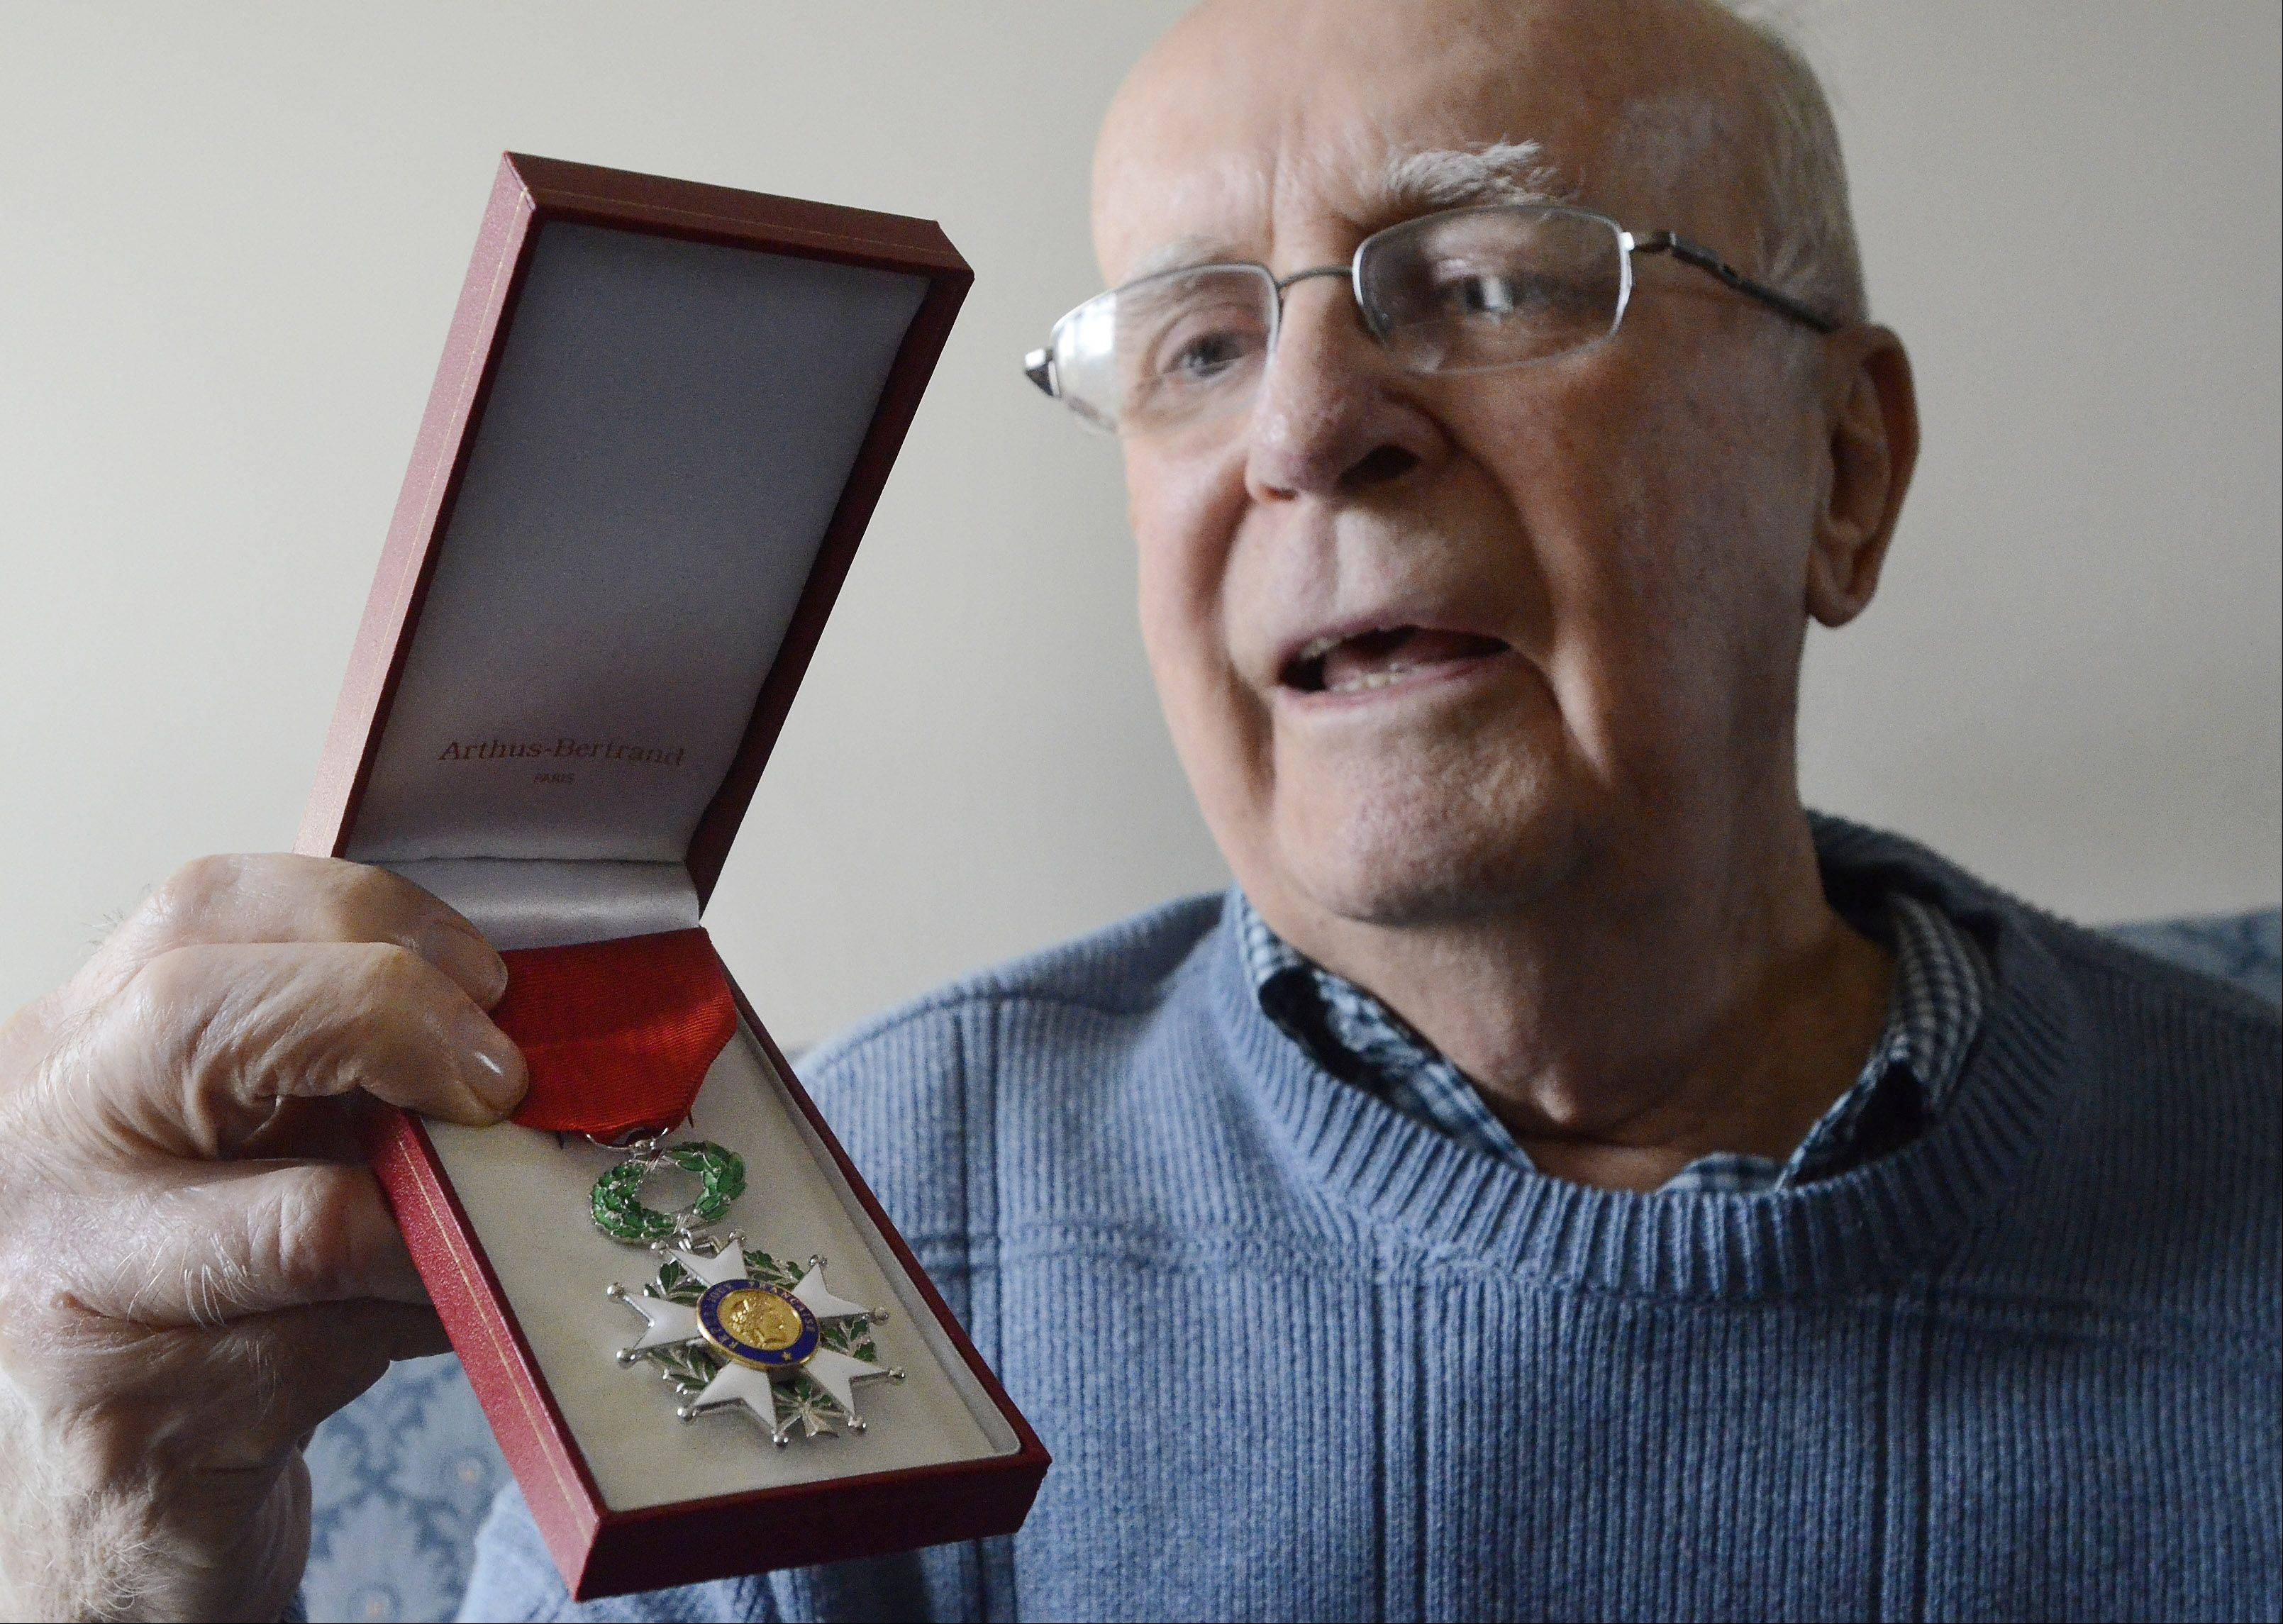 Schaumburg D-Day and Battle of the Bulge veteran Jim Butz has been awarded the French Legion of Honor medal. The medal will formally be awarded to him March 1.